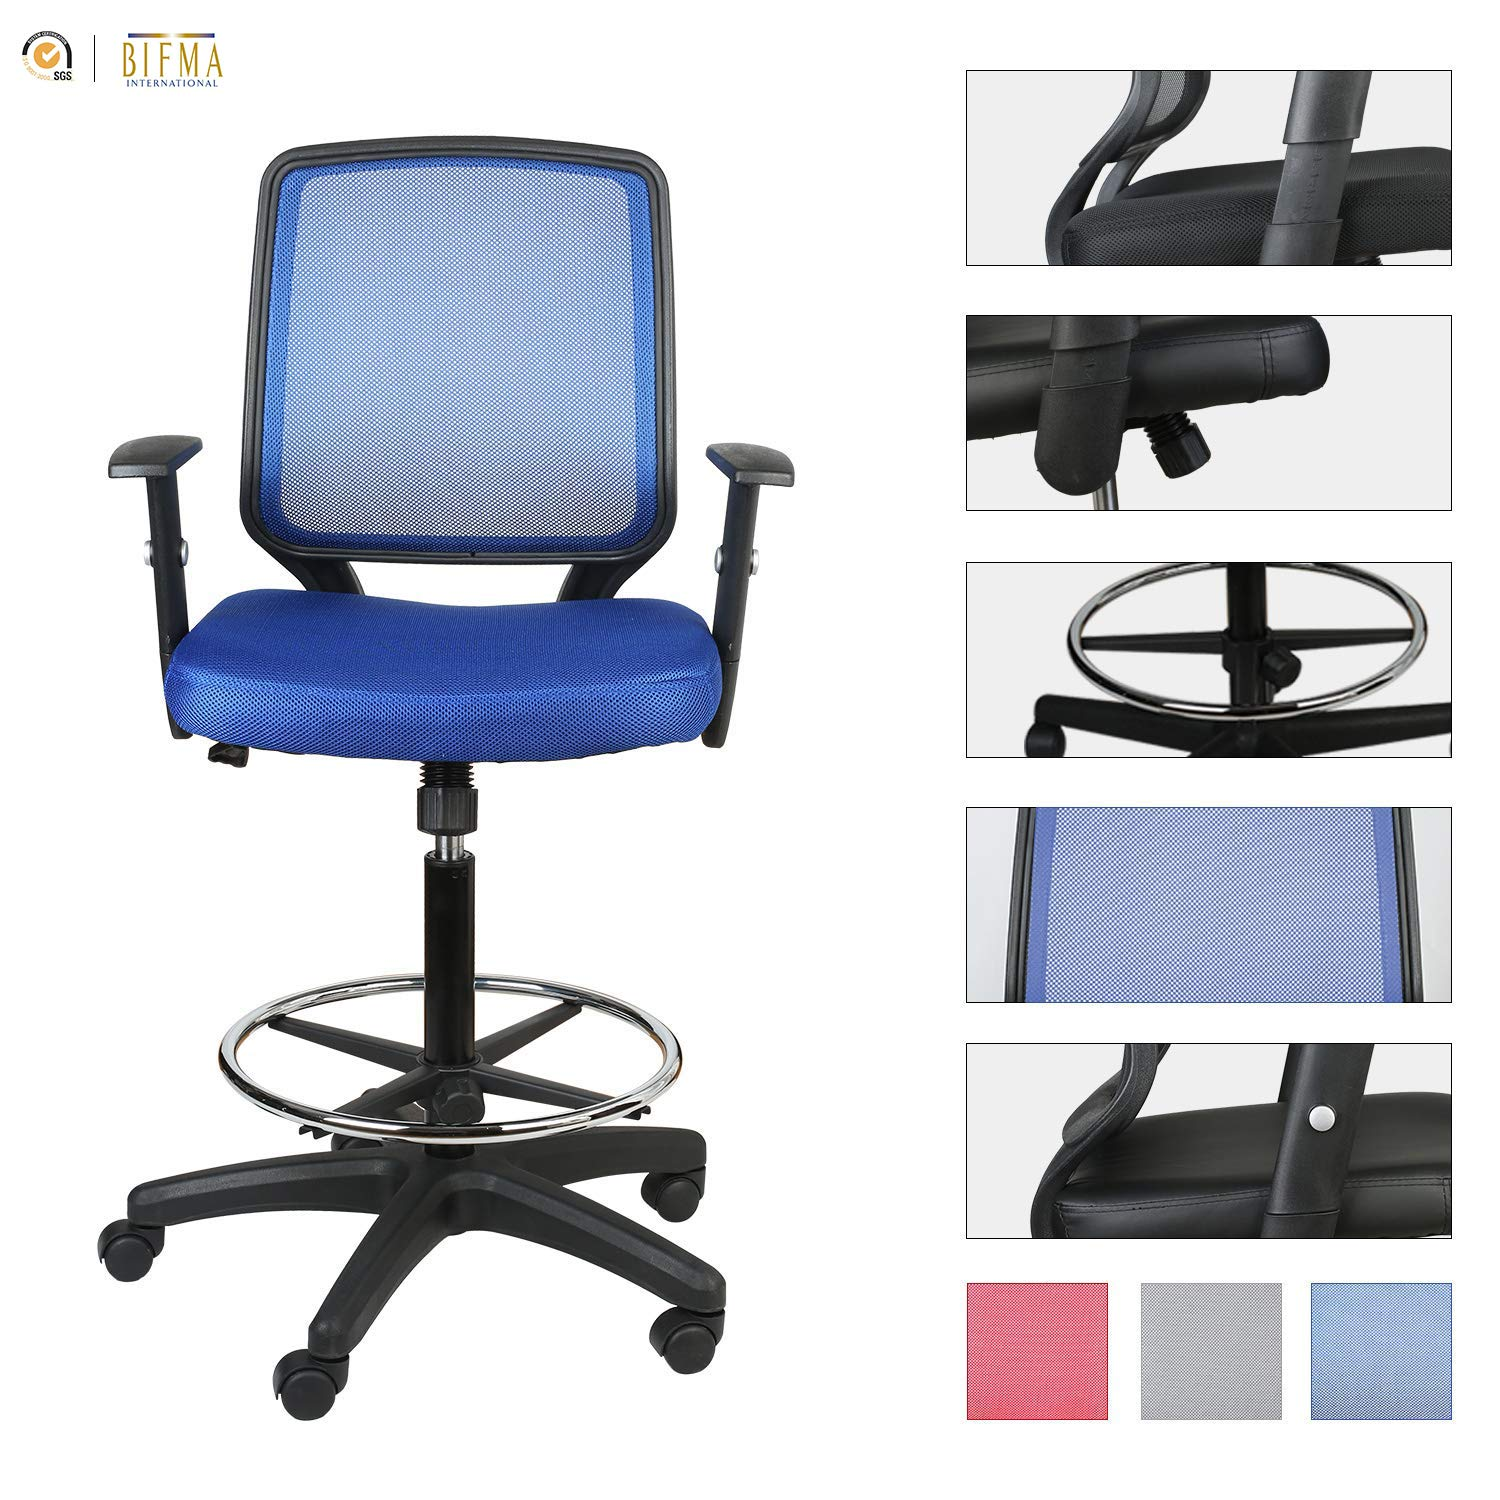 LUCKWIND Office Drafting Chair Mesh - Adjustable Arm Task Ergonomic Lumbar Support Mid Mesh Back Computer Desk Chair Swivel Chair with Adjustable Chrome Foot Rest Big and Tall Tilt (SGS-BIFMA Blue) by Sundux